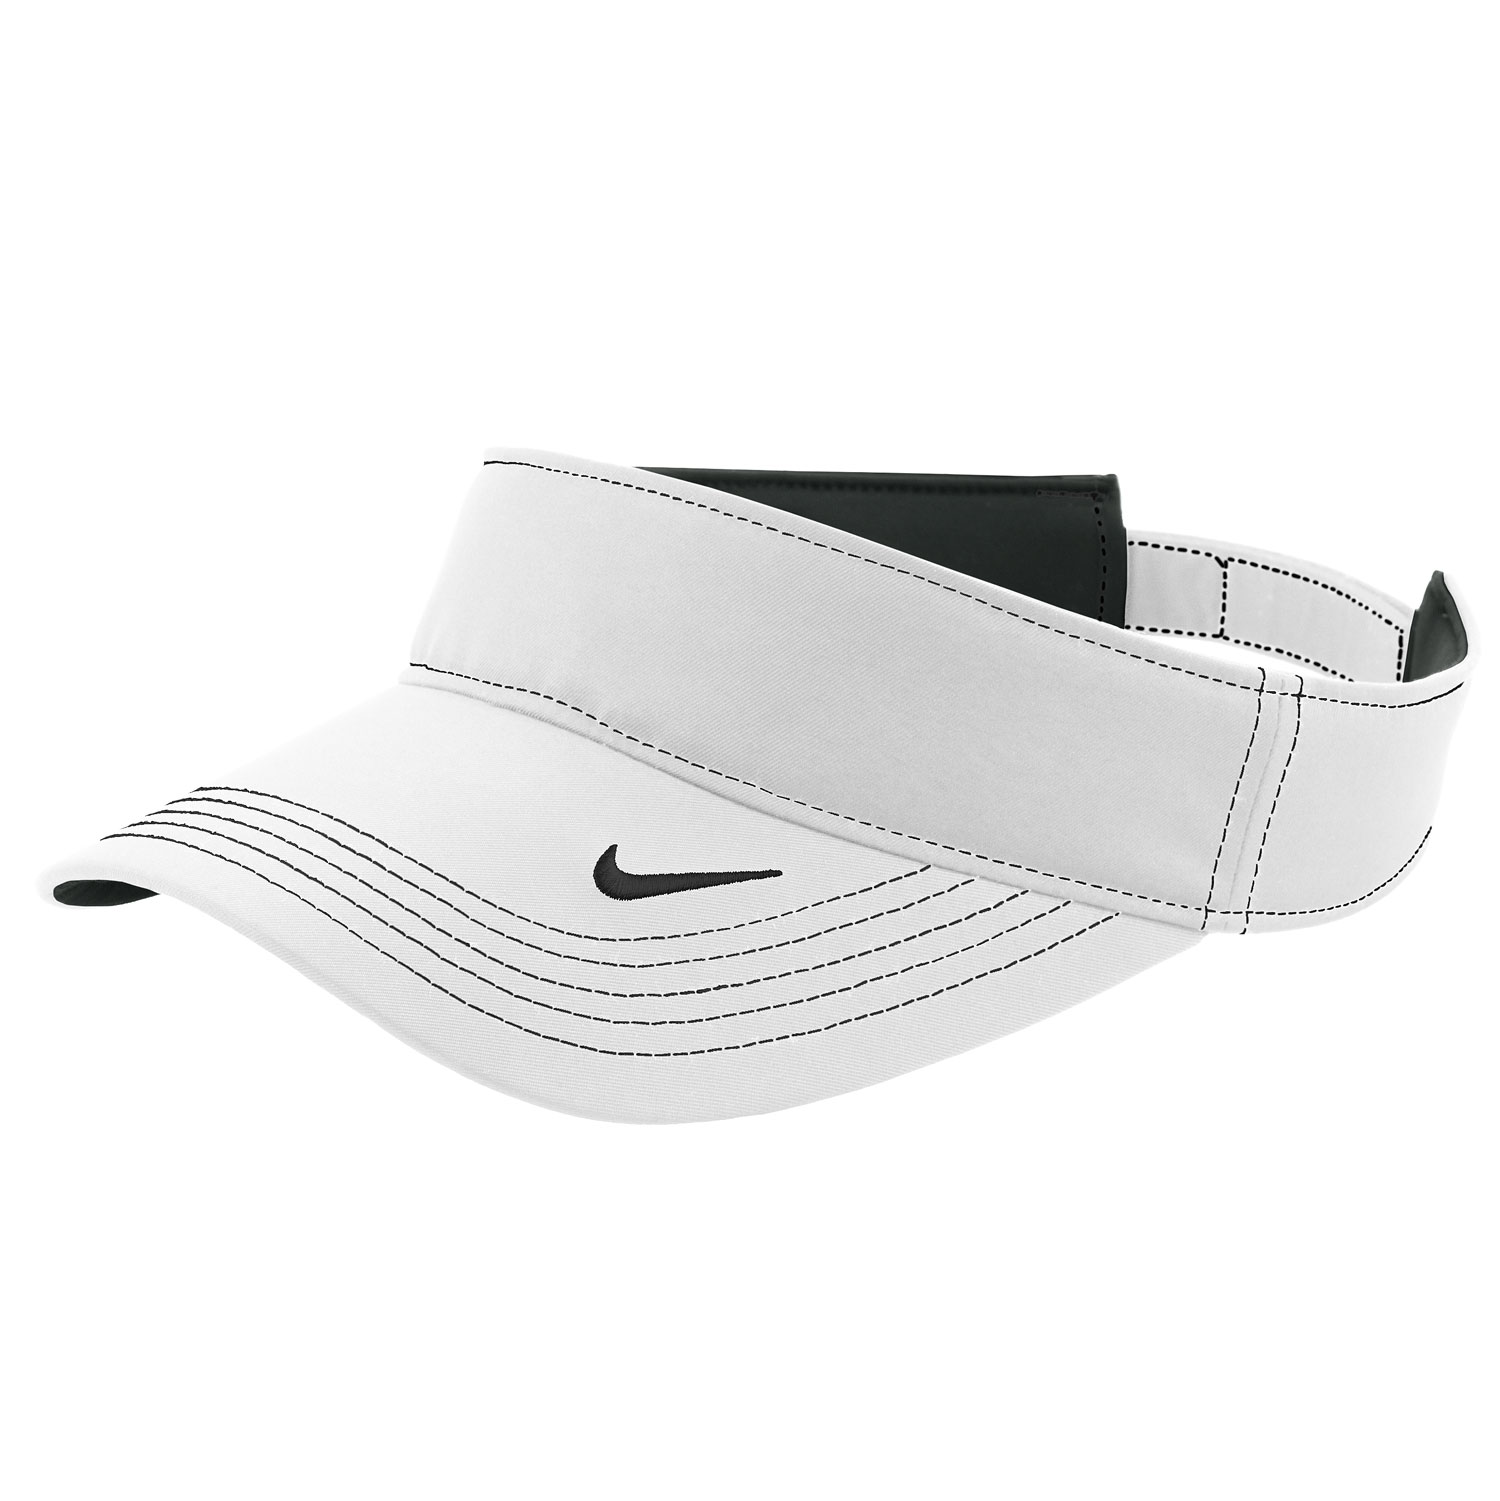 036ad81ddde Nike Golf - Dri-FIT Swoosh Visor – Cherie4art Commercial Embroidery